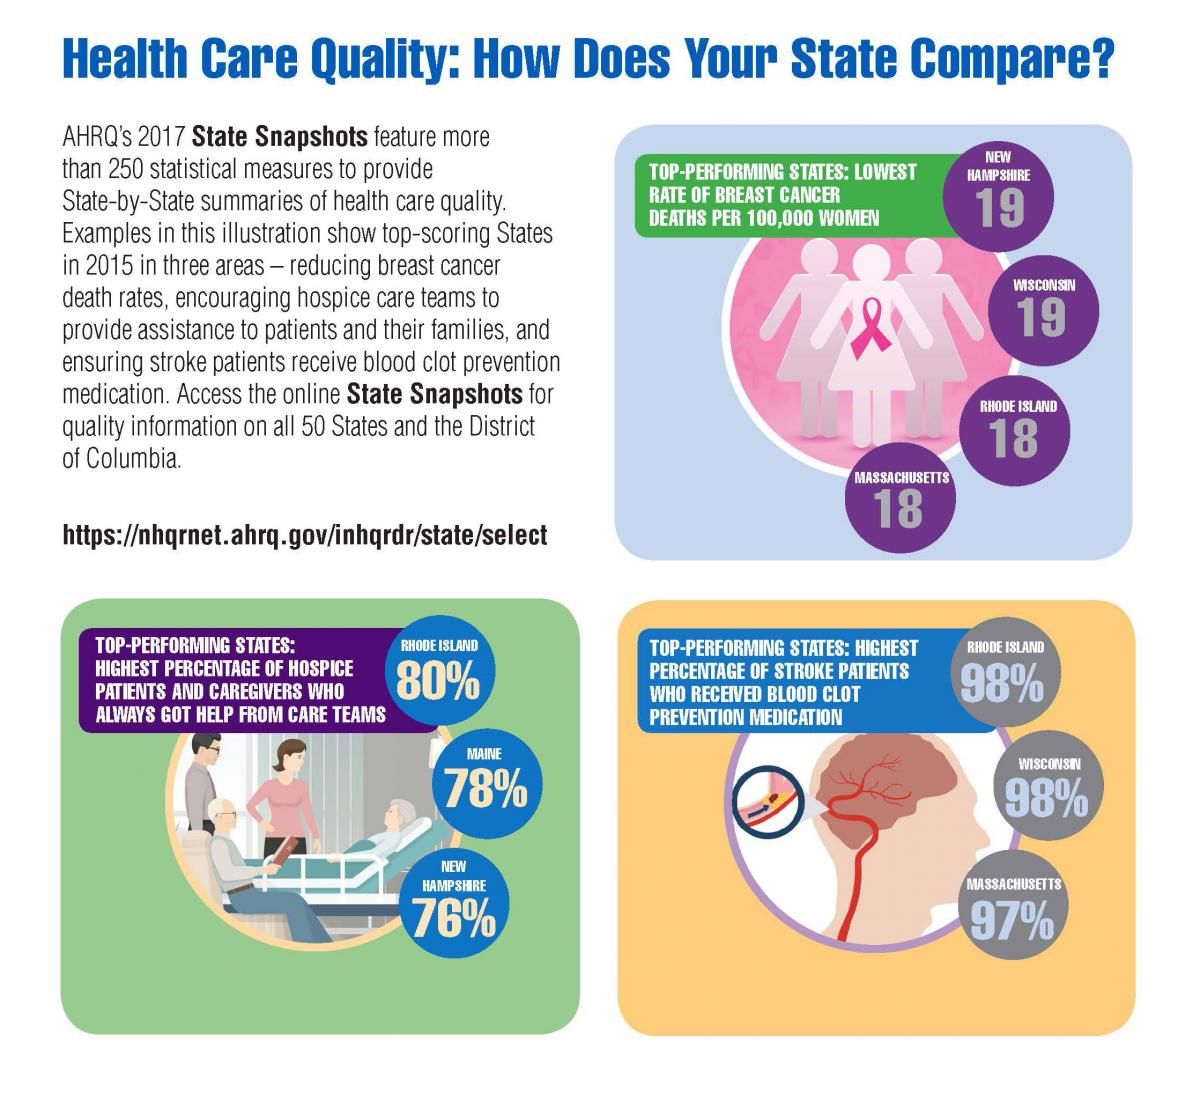 AHRQ's 2017 State Snapshots feature more than 250 statistical measures to provide State-by-State summaries of health care quality.